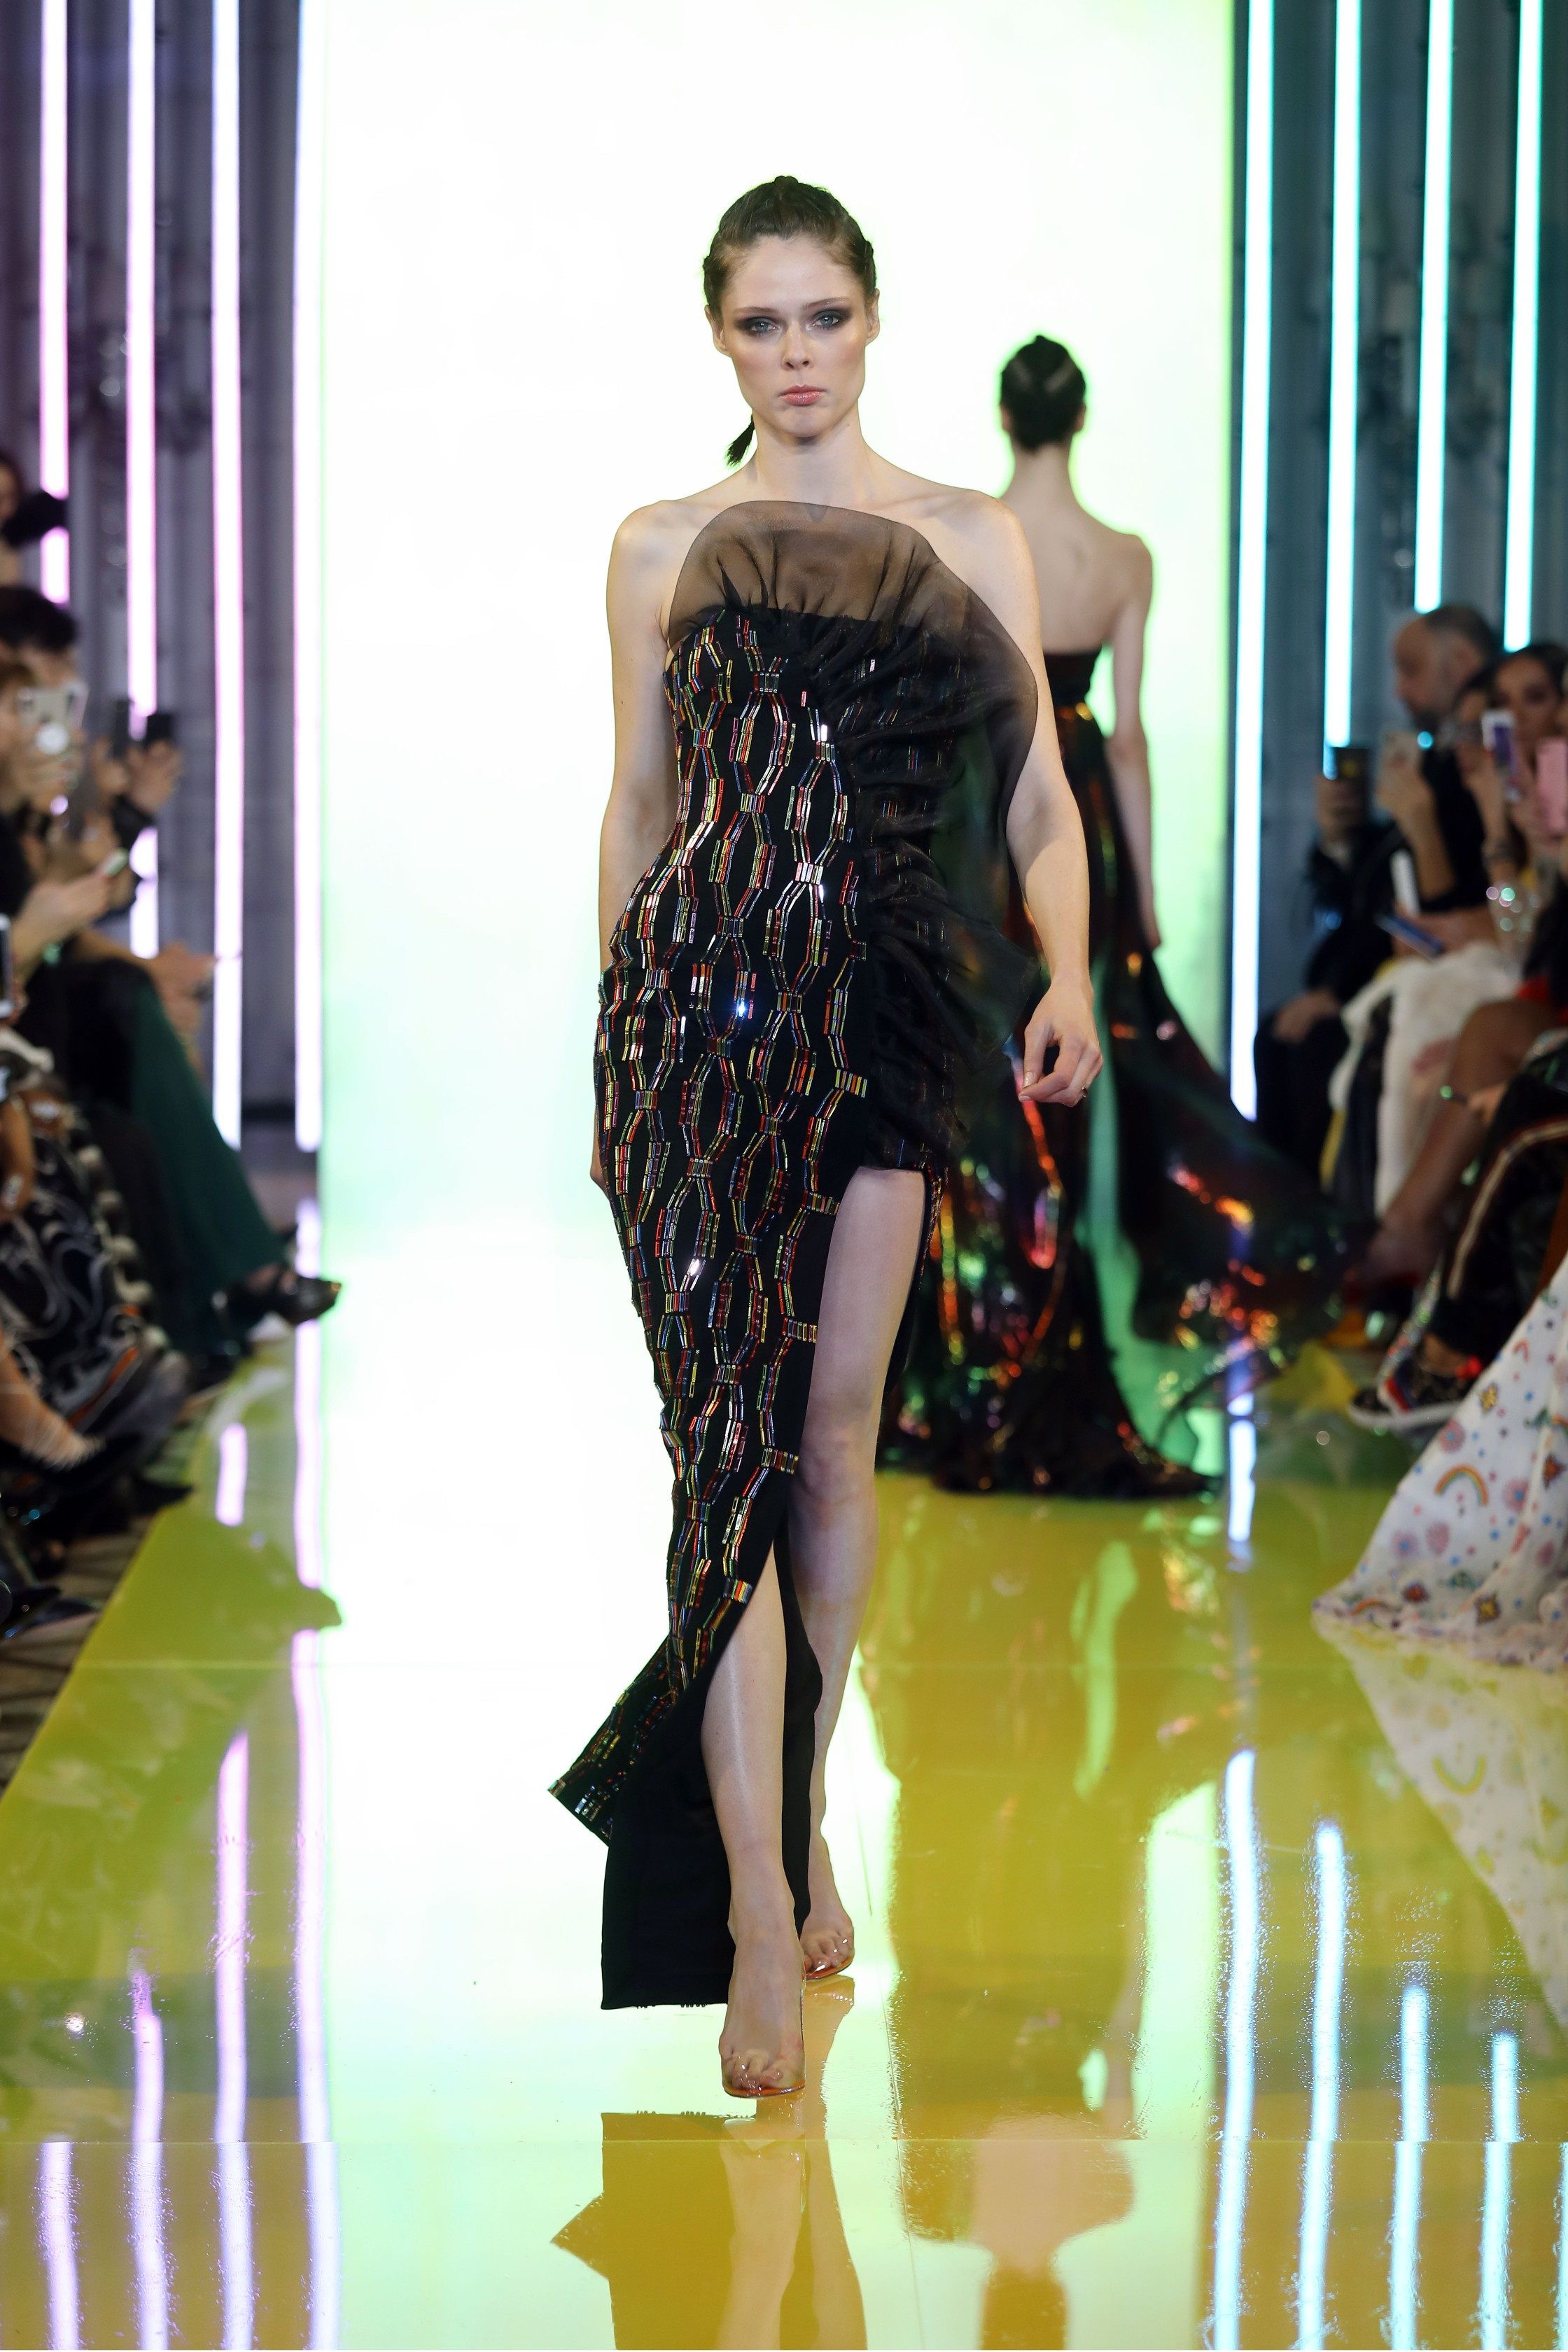 SS19-20- Black Gown Embellished With Colored Laser-Cut Mirrors Featuring A Structured Organza Side Ruffle And Slit .jpg